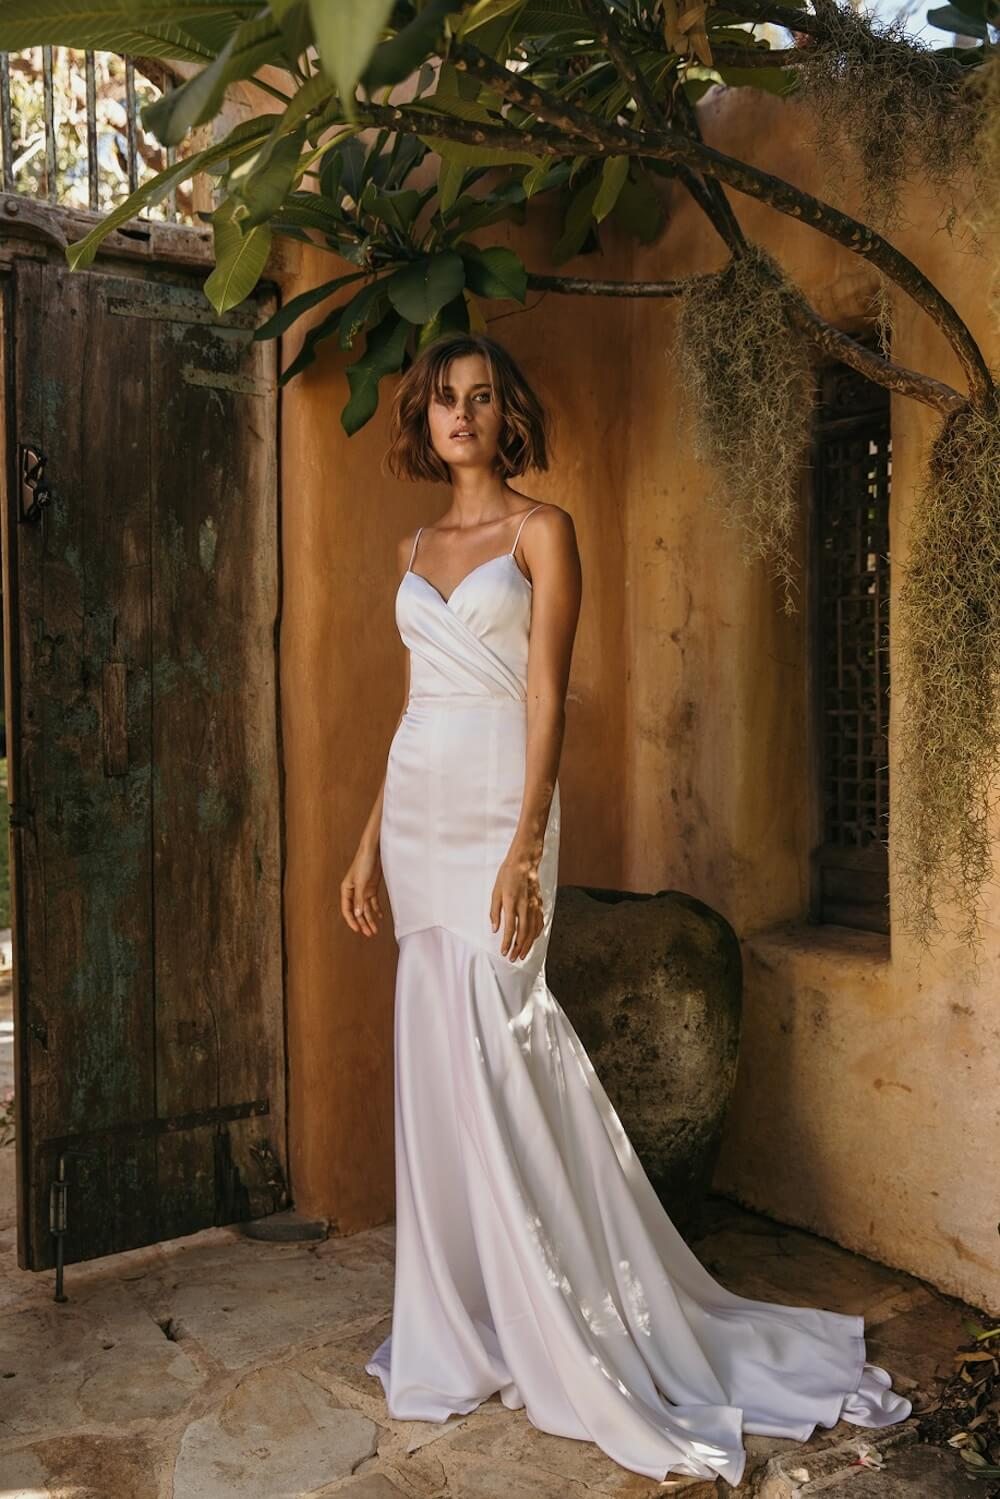 Wanderlust wedding dress by Jennifer Go Bridal featured on LOVE FIND CO.